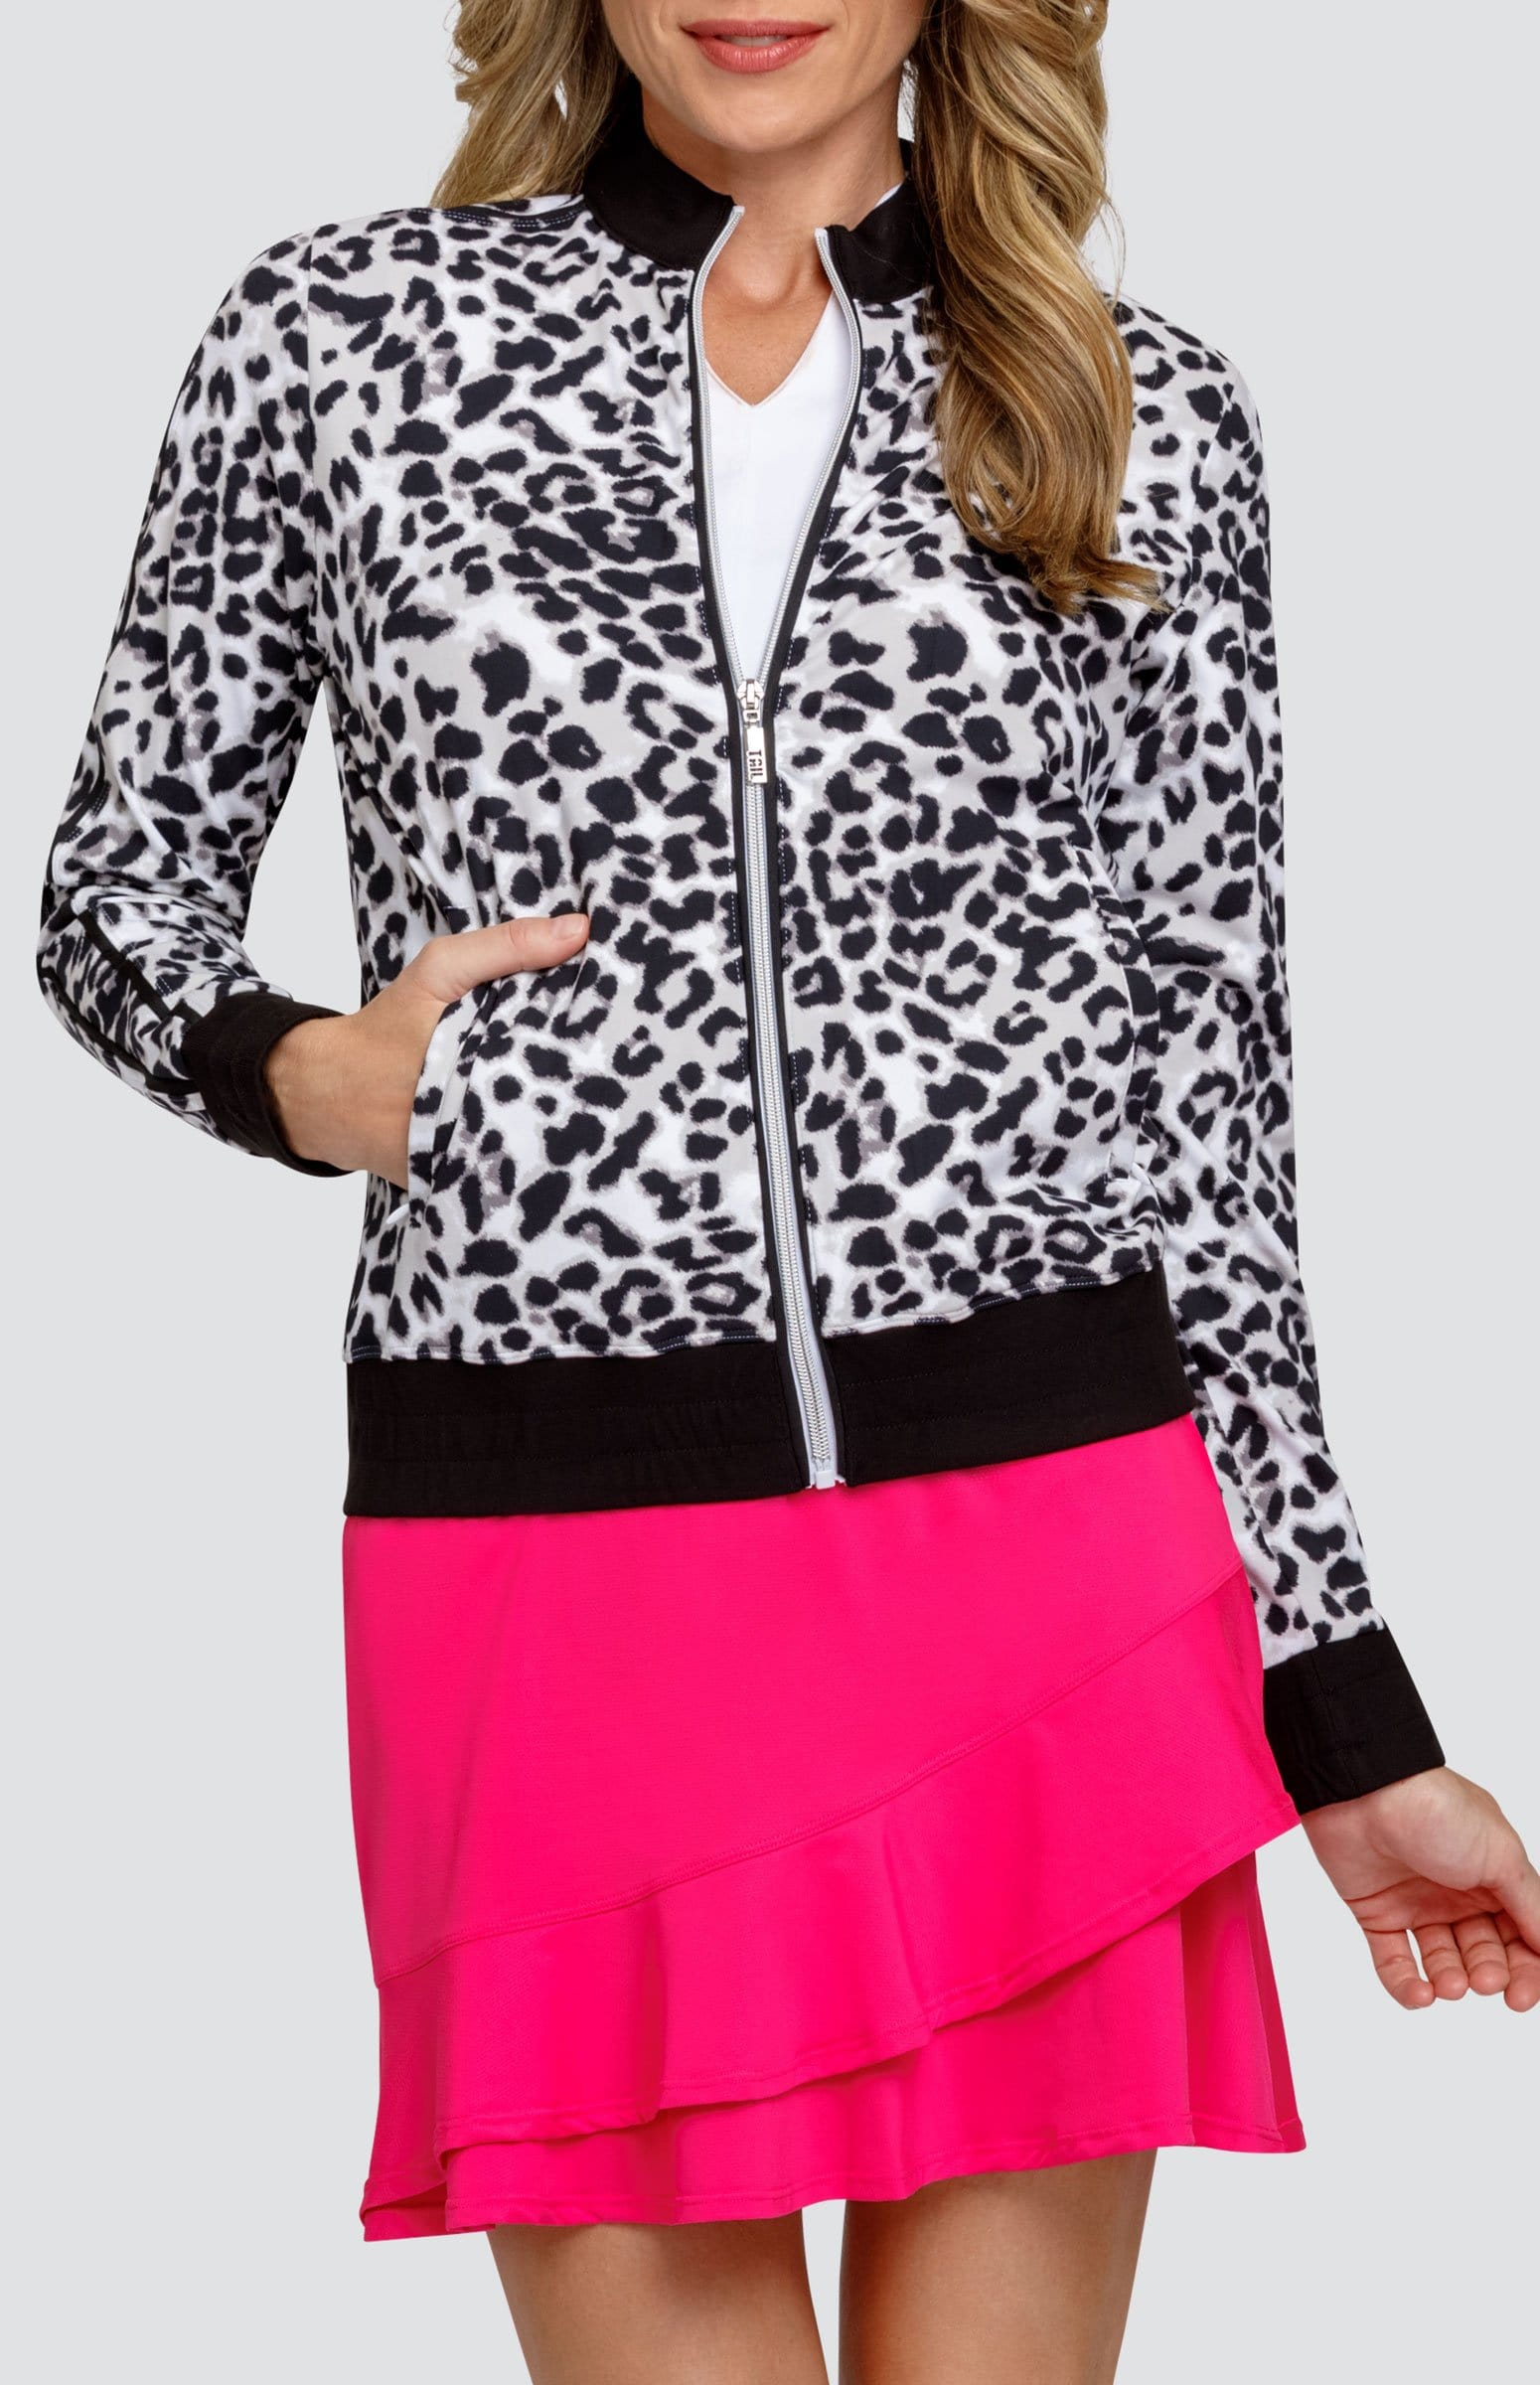 Madalynn Jacket - Feisty Feline